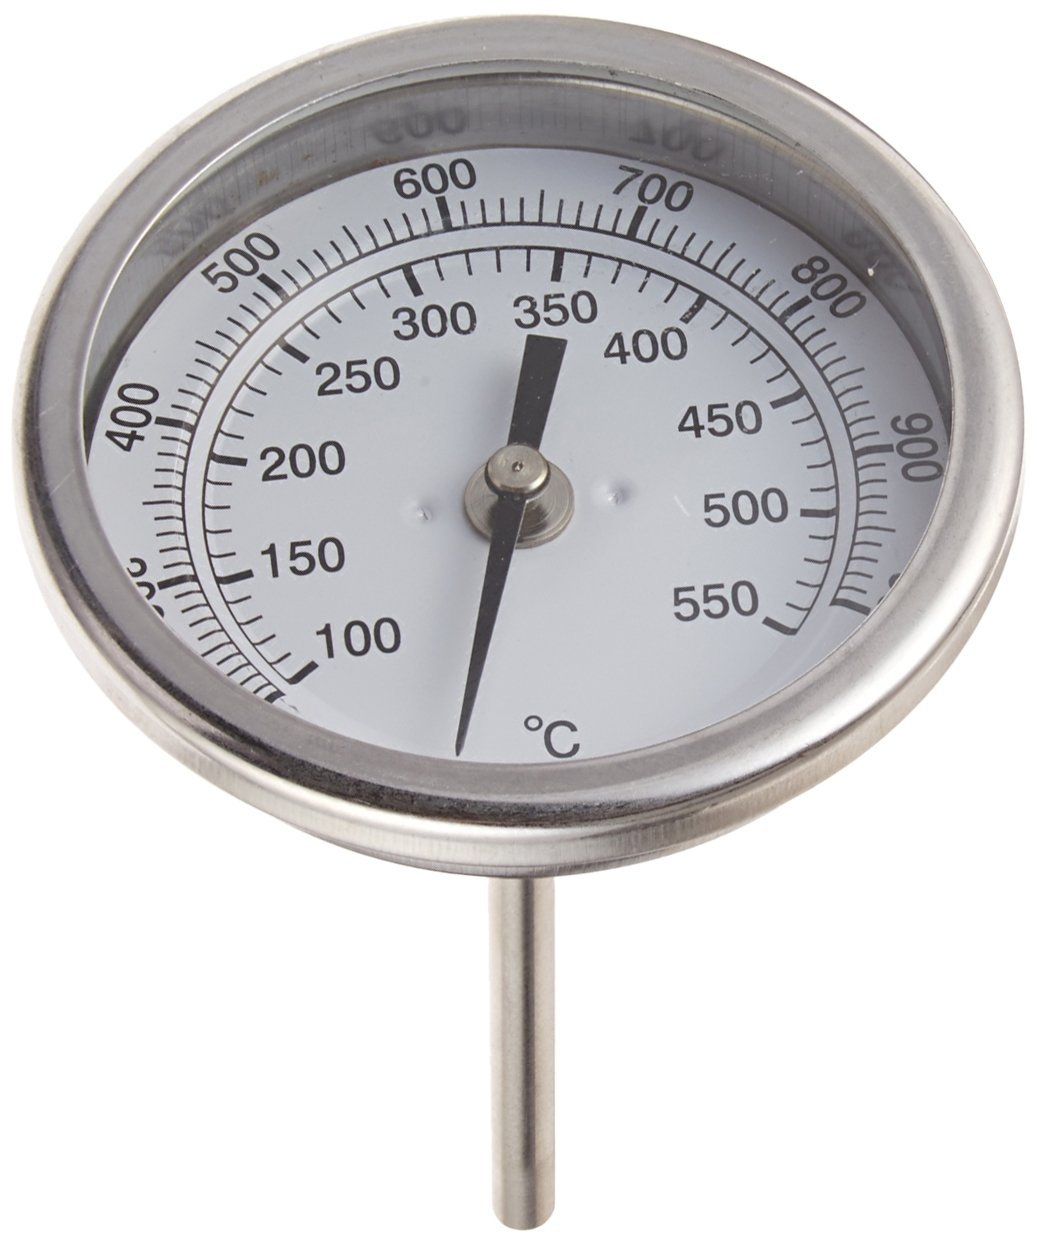 """PIC Gauge B3B4-MM 3/"""" Dial Size Stainless Steel Case Back Angle Connection 50//300/°F and 10//149/°C 4 Stem Length 316 Stainless Steel Stem Bimetal Thermometer"""